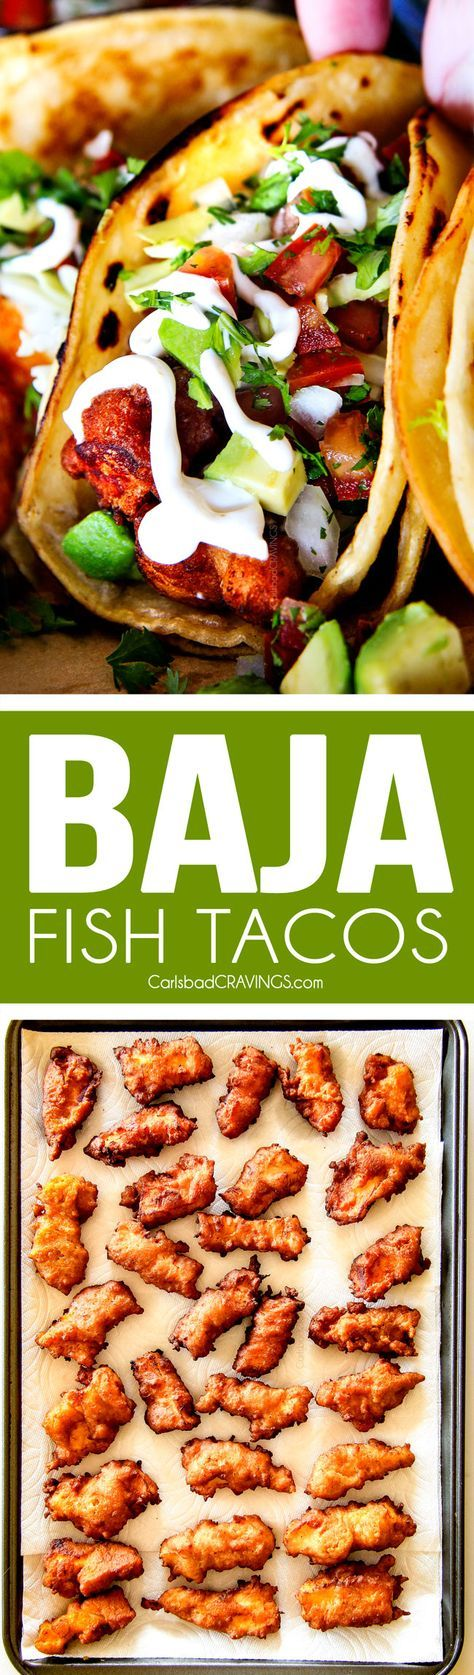 these Crispy fried Baja Fish Tacos are BETTER than any restaurant!!! I can't even believe how good these are and super easy with a one step batter. And don't skip the white sauce - its heavenly!